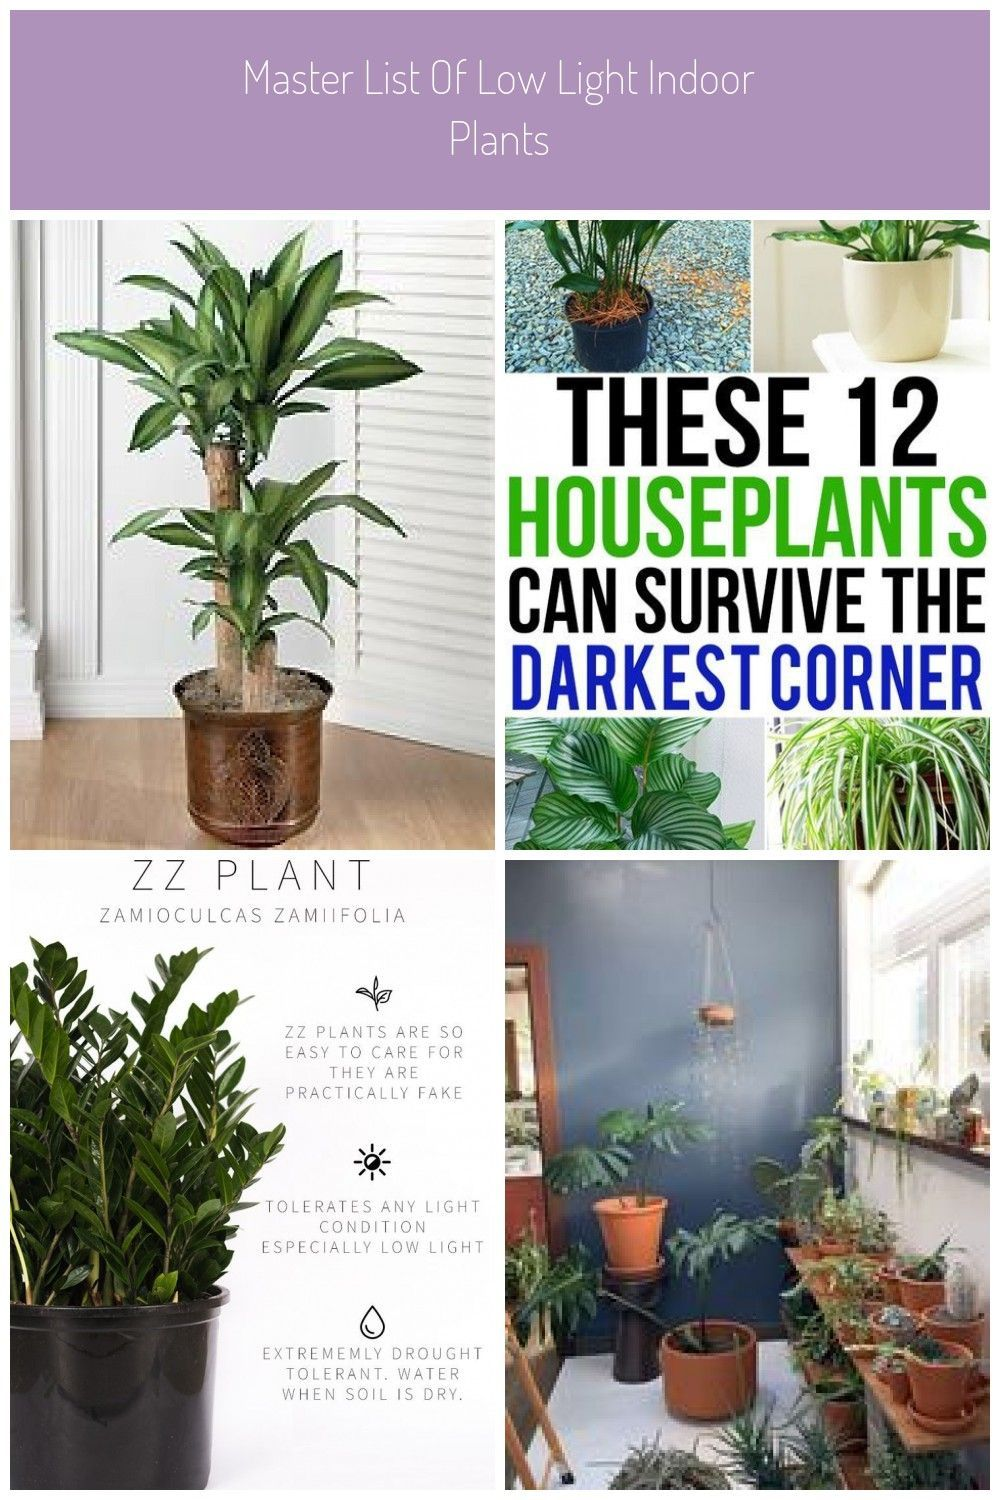 Tropical House Plants Identifying Common Low Light Buy Indoorbuy Common House Bu Buy Common In 2020 Tropical House Plants House Plants Indoor Common House Plants